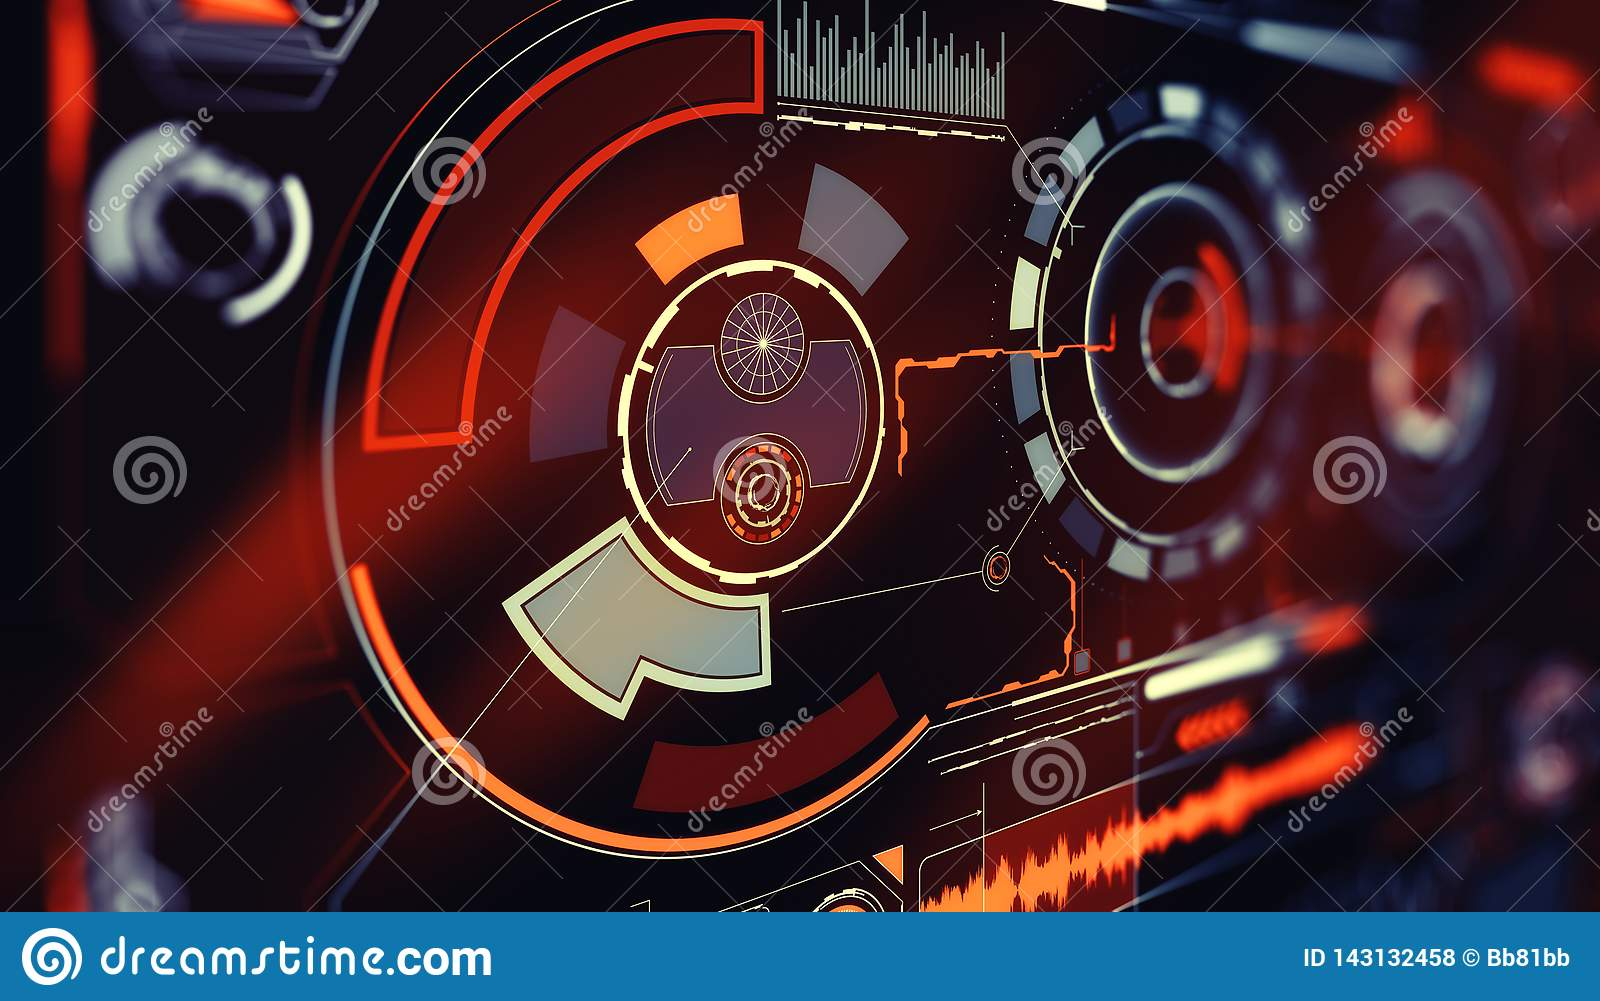 Elements for HUD interface. Illustration for your design. Technology background.Futuristic user interface